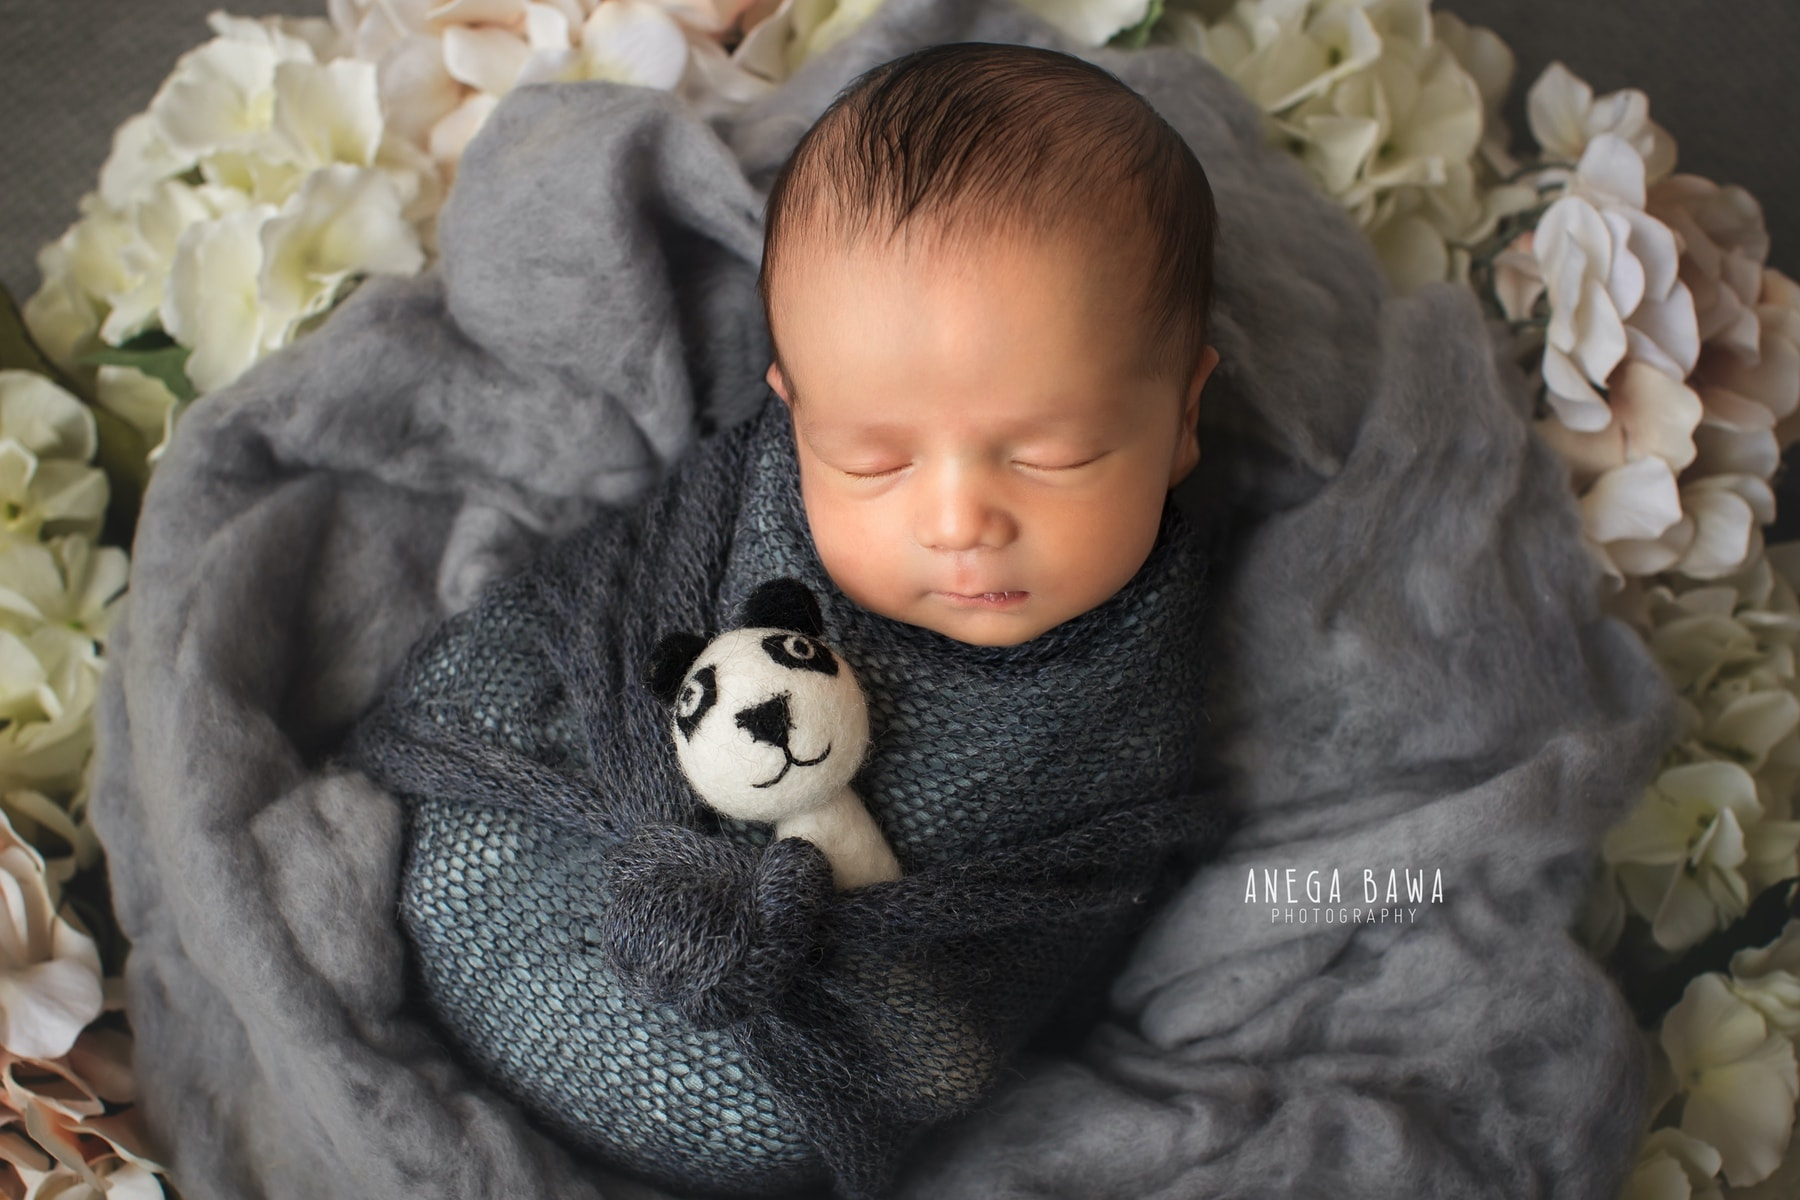 grey floral panda newborn photography delhi 11 days baby boy photoshoot gurgaon anega bawa